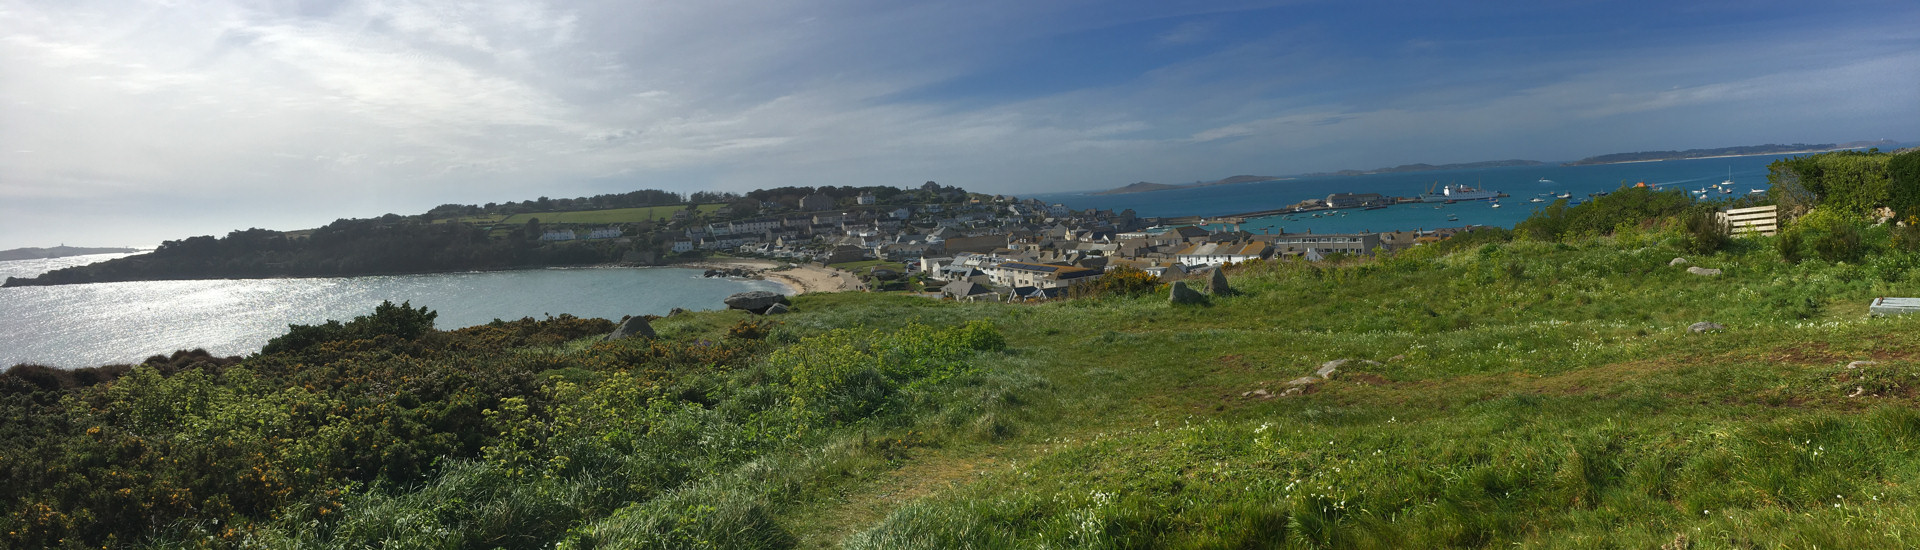 Fabulous view from near 'Leumeah' of the Isles of Scilly